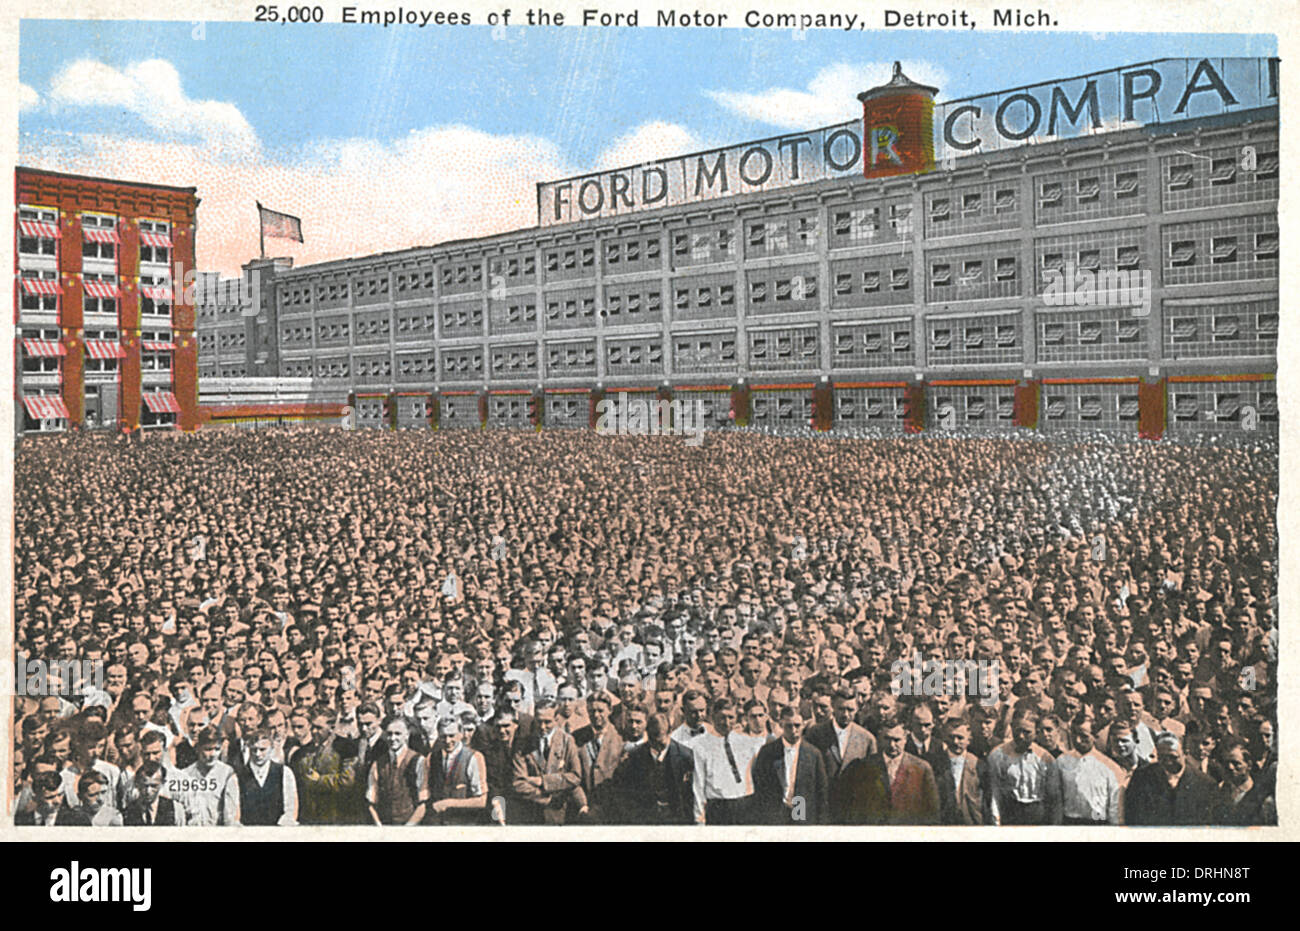 Employees ford motor company detroit michigan usa for Ford motor company stock